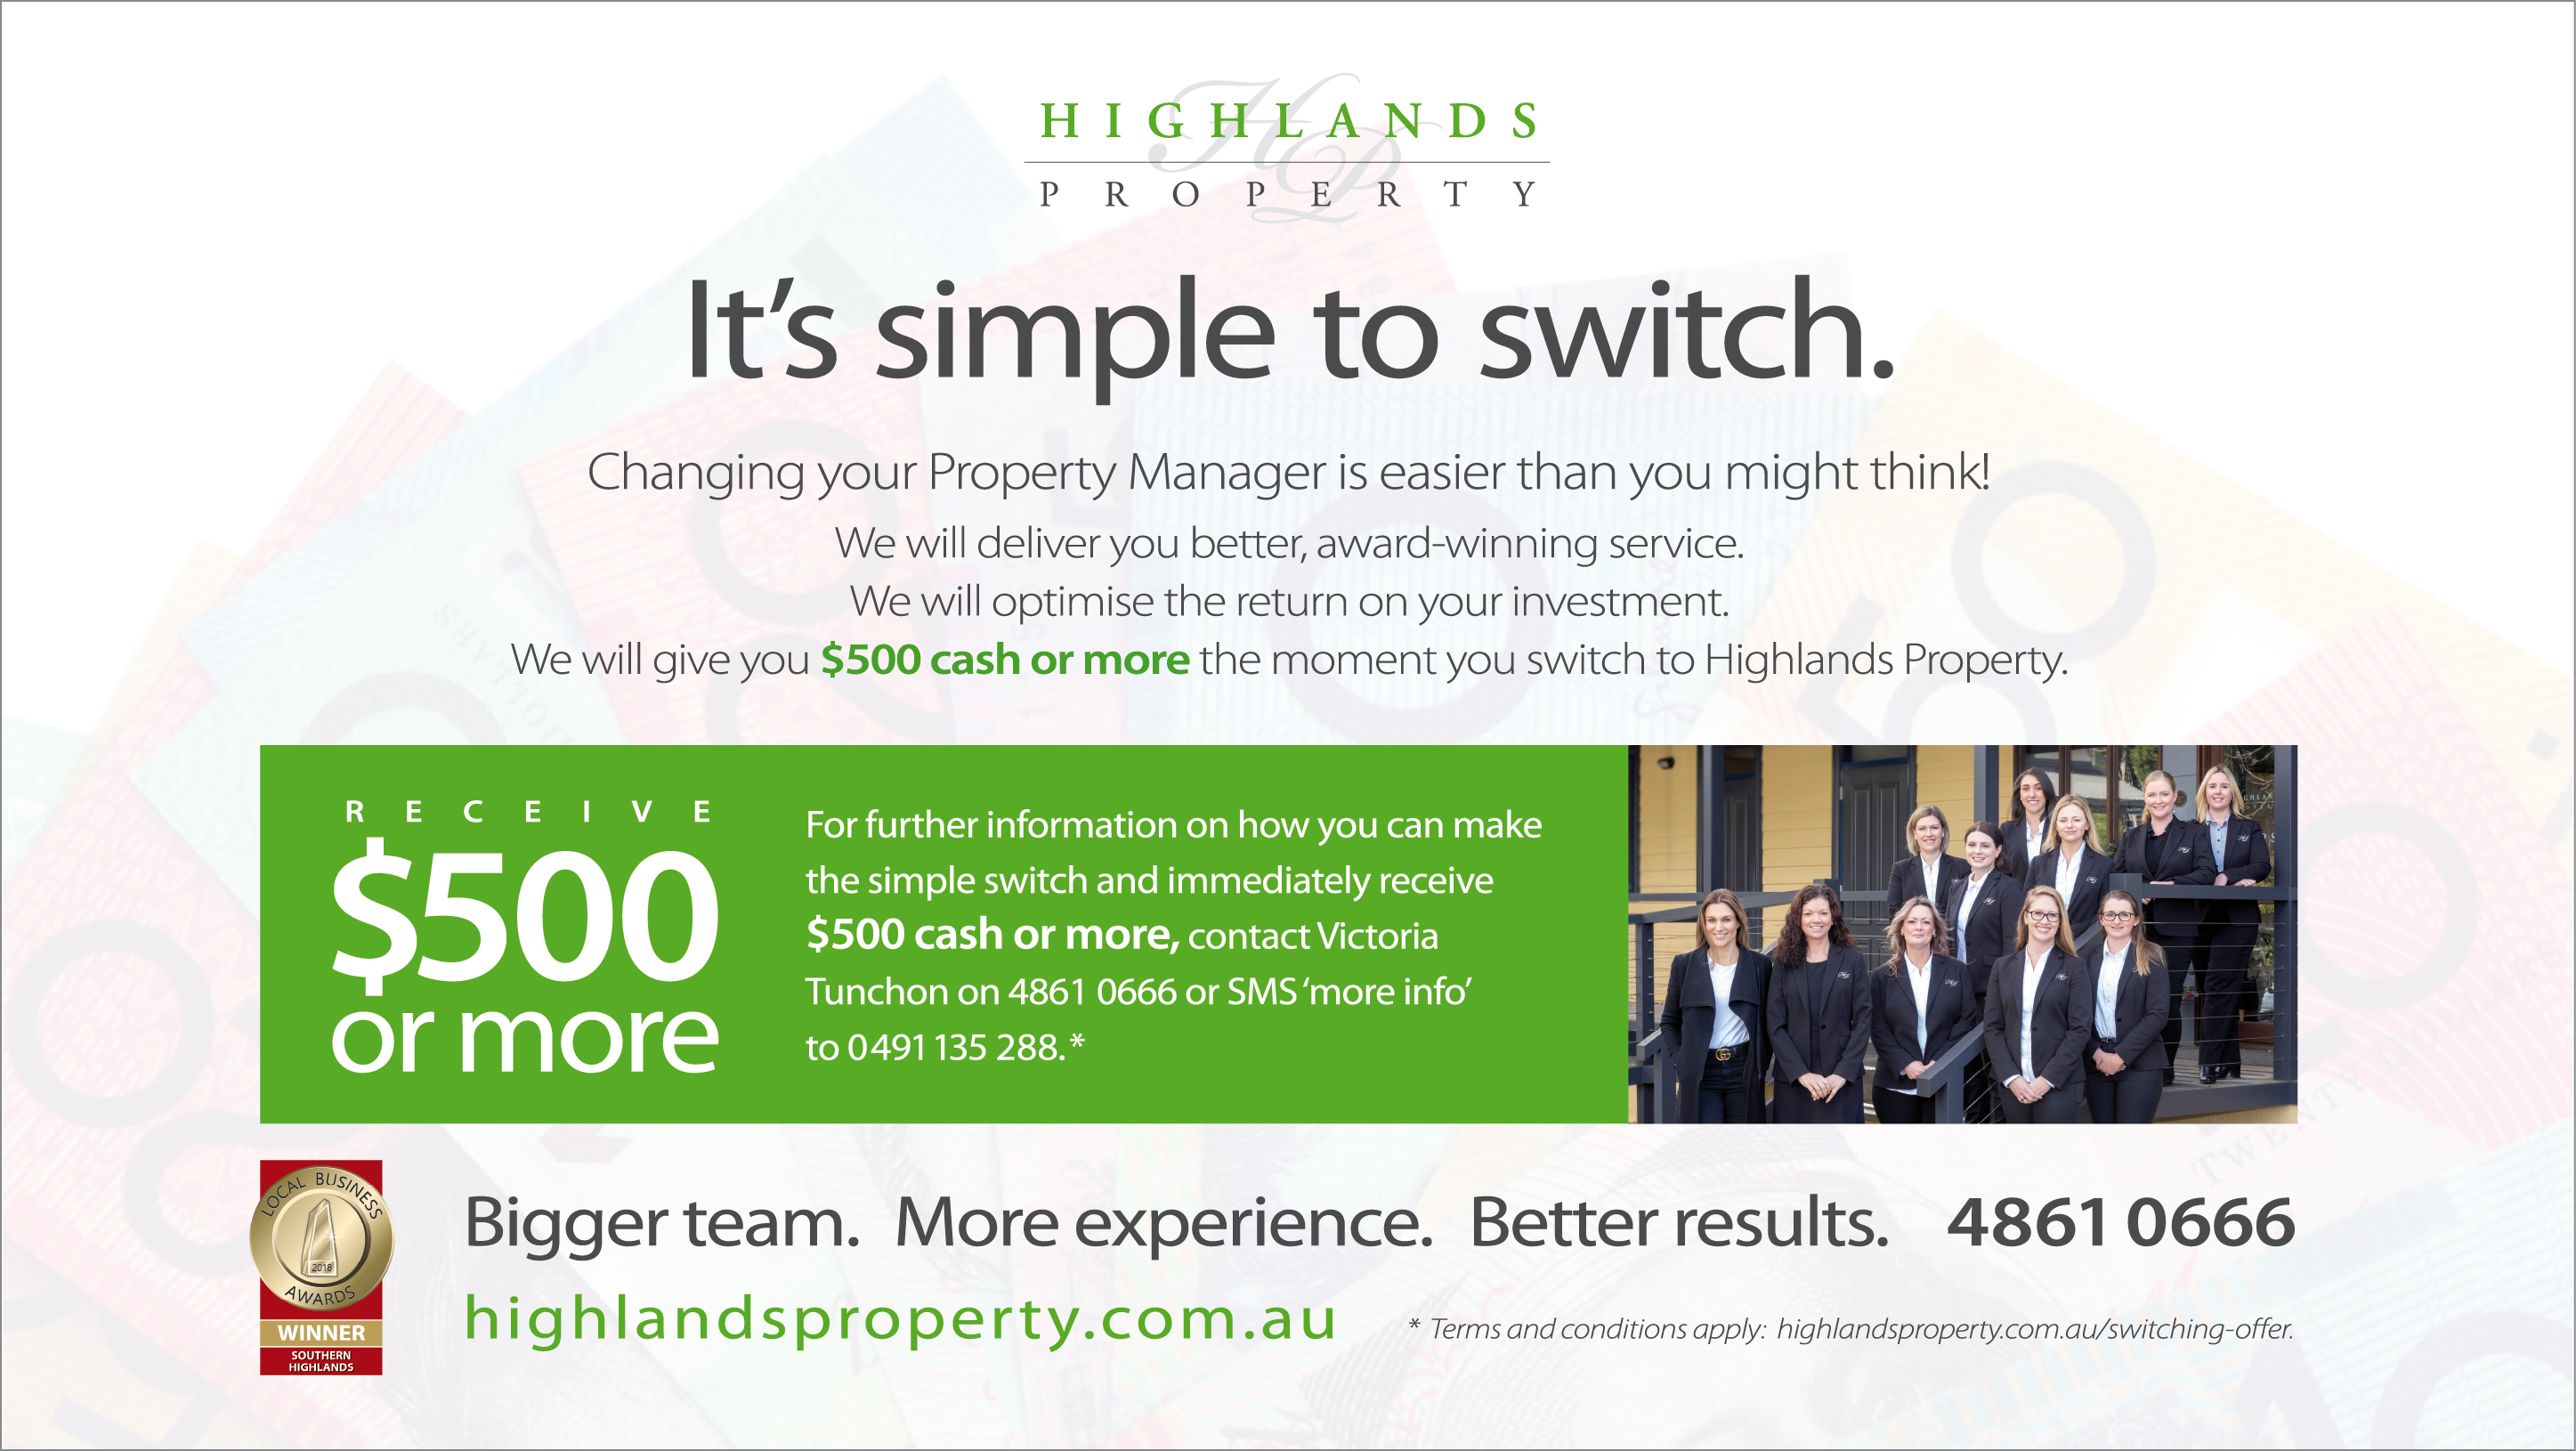 https://assets.boxdice.com.au/highlands/attachments/c49/06d/hp_proplife_270818_pm_offer_half_1ol_for_email_3_mb.jpg?3112fe11fd57c9064709bc102b6045ad